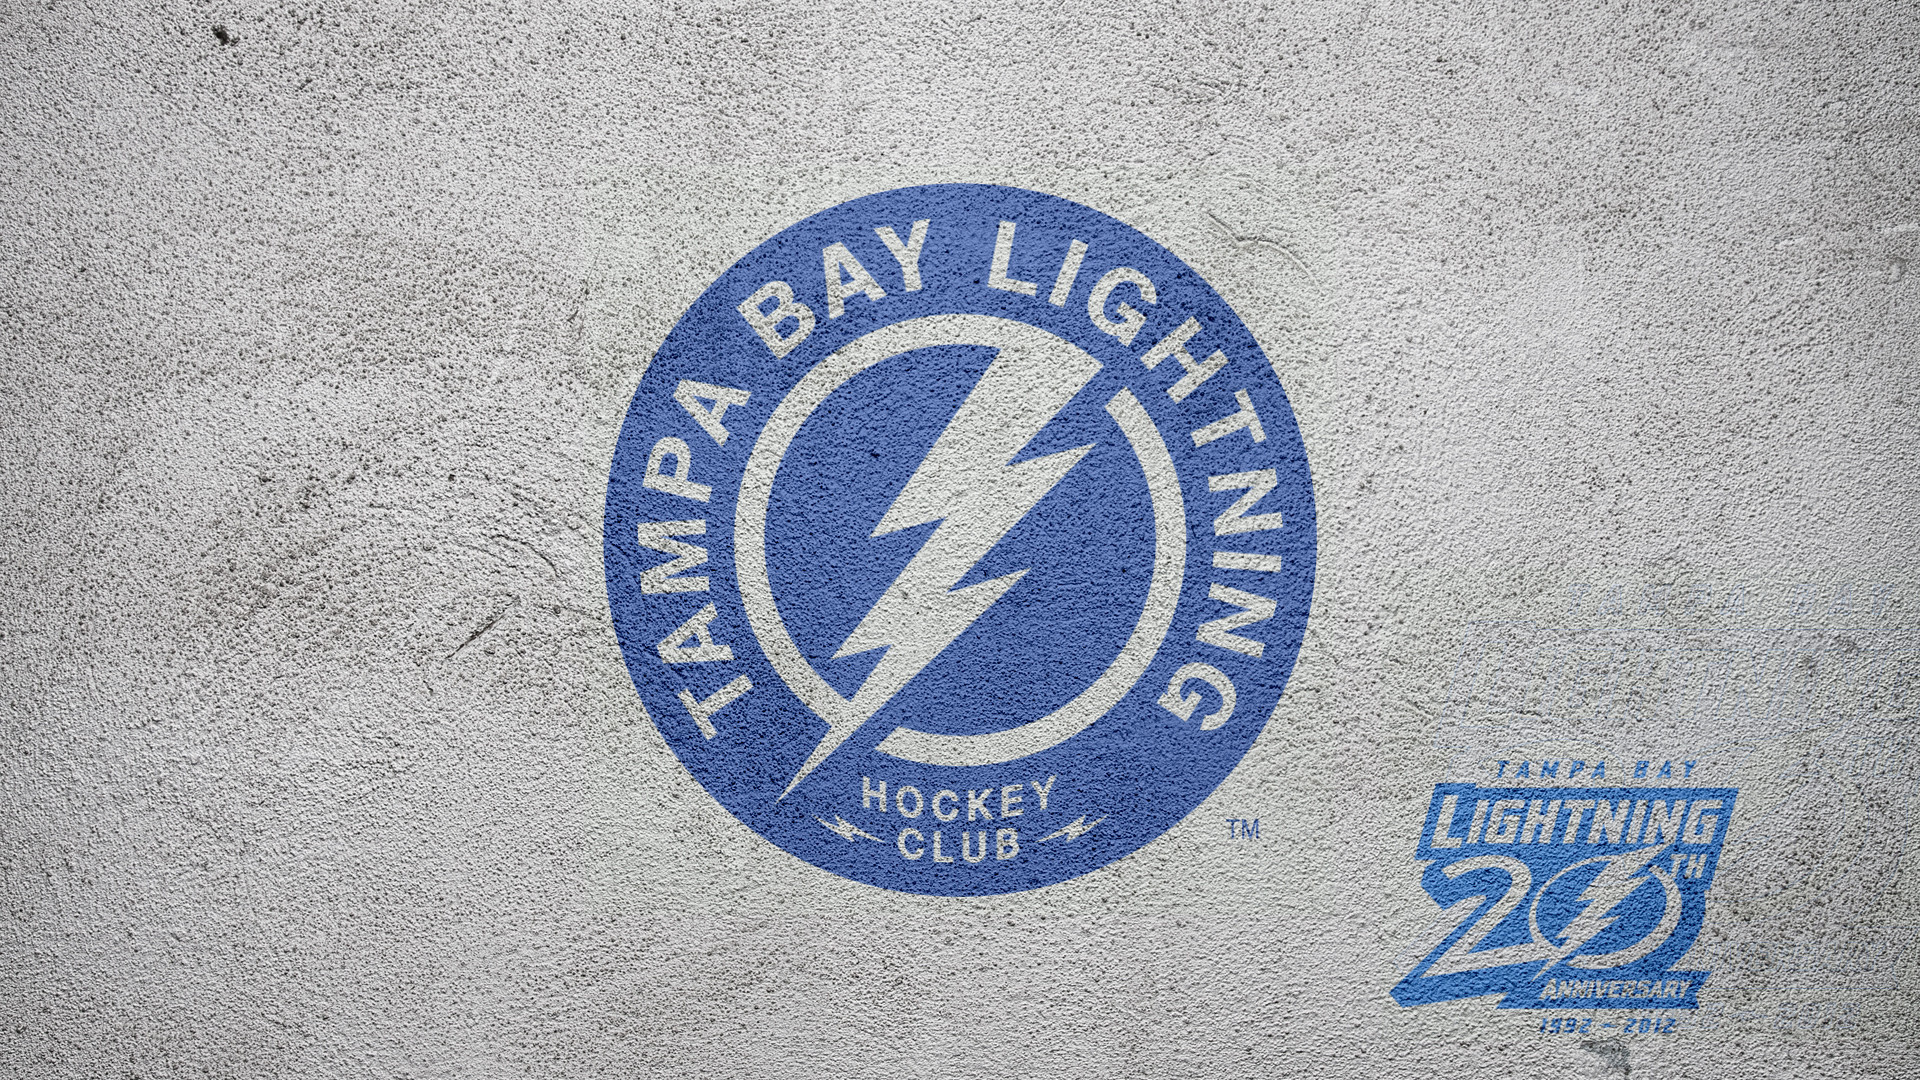 1920x1080 ... Tampa Bay Lightning NHL Wallpaper by Realyze